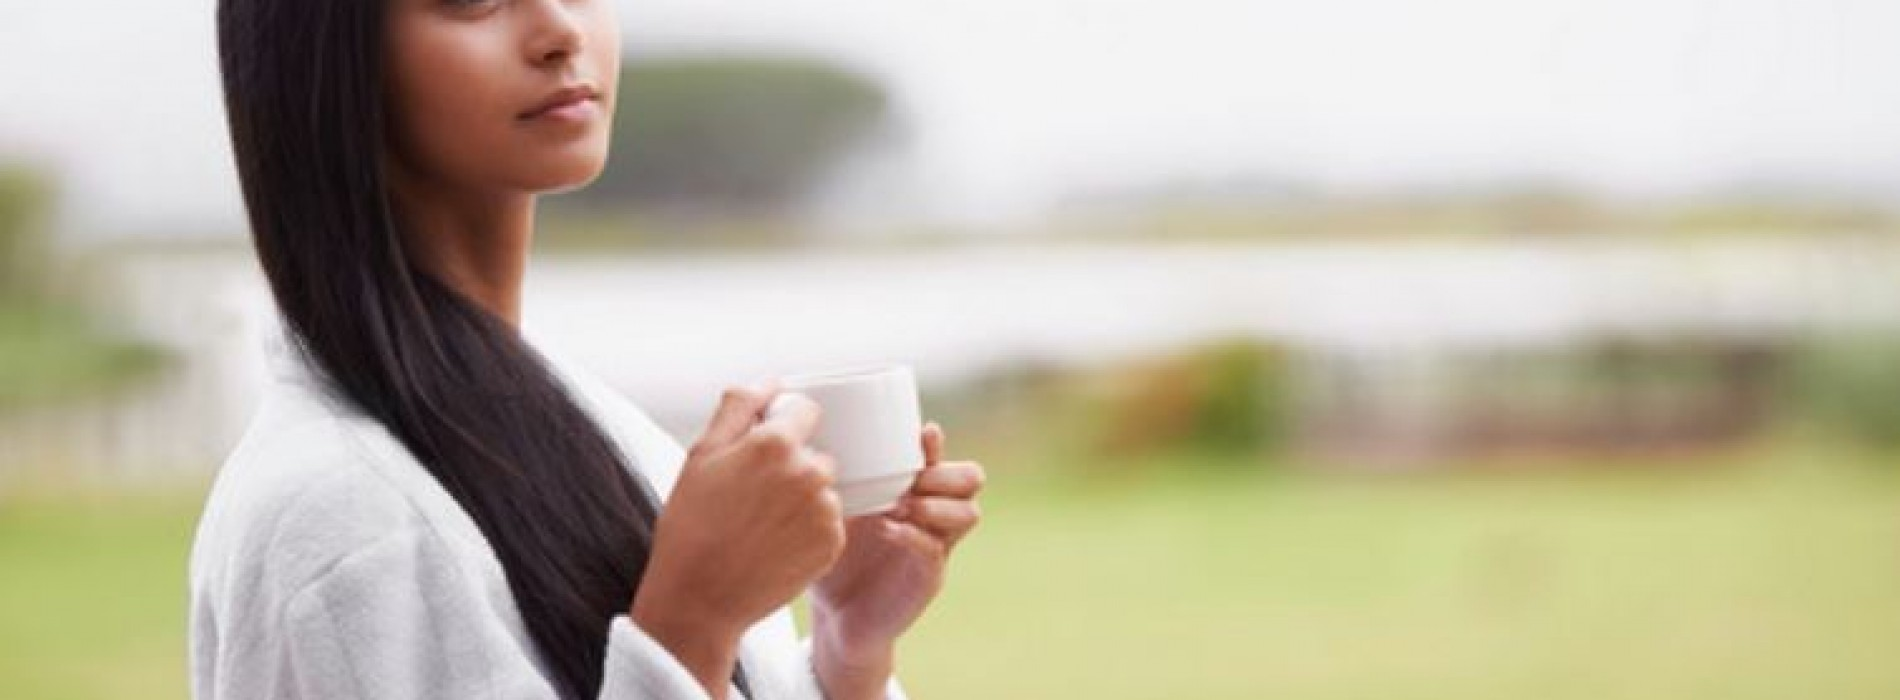 Getting slim and purify your body with detox tea